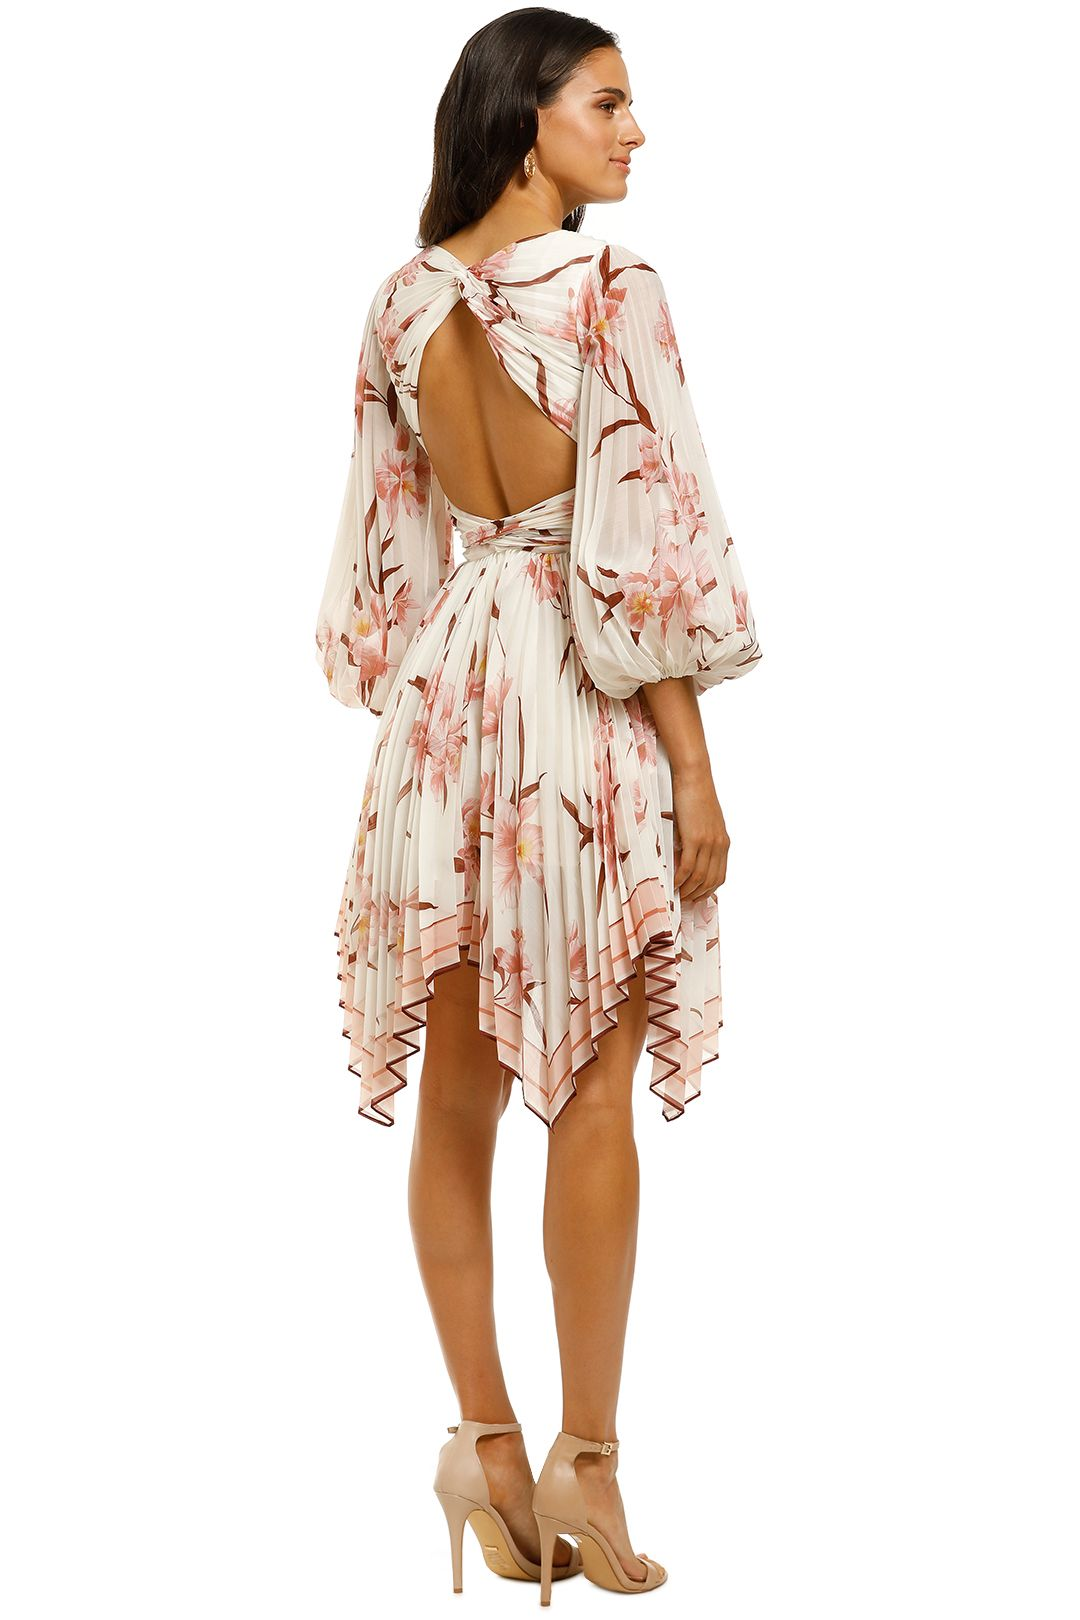 Zimmermann-Corsage-Pleat-Mini-Dress-Ivory-Peach-Orchid-Back